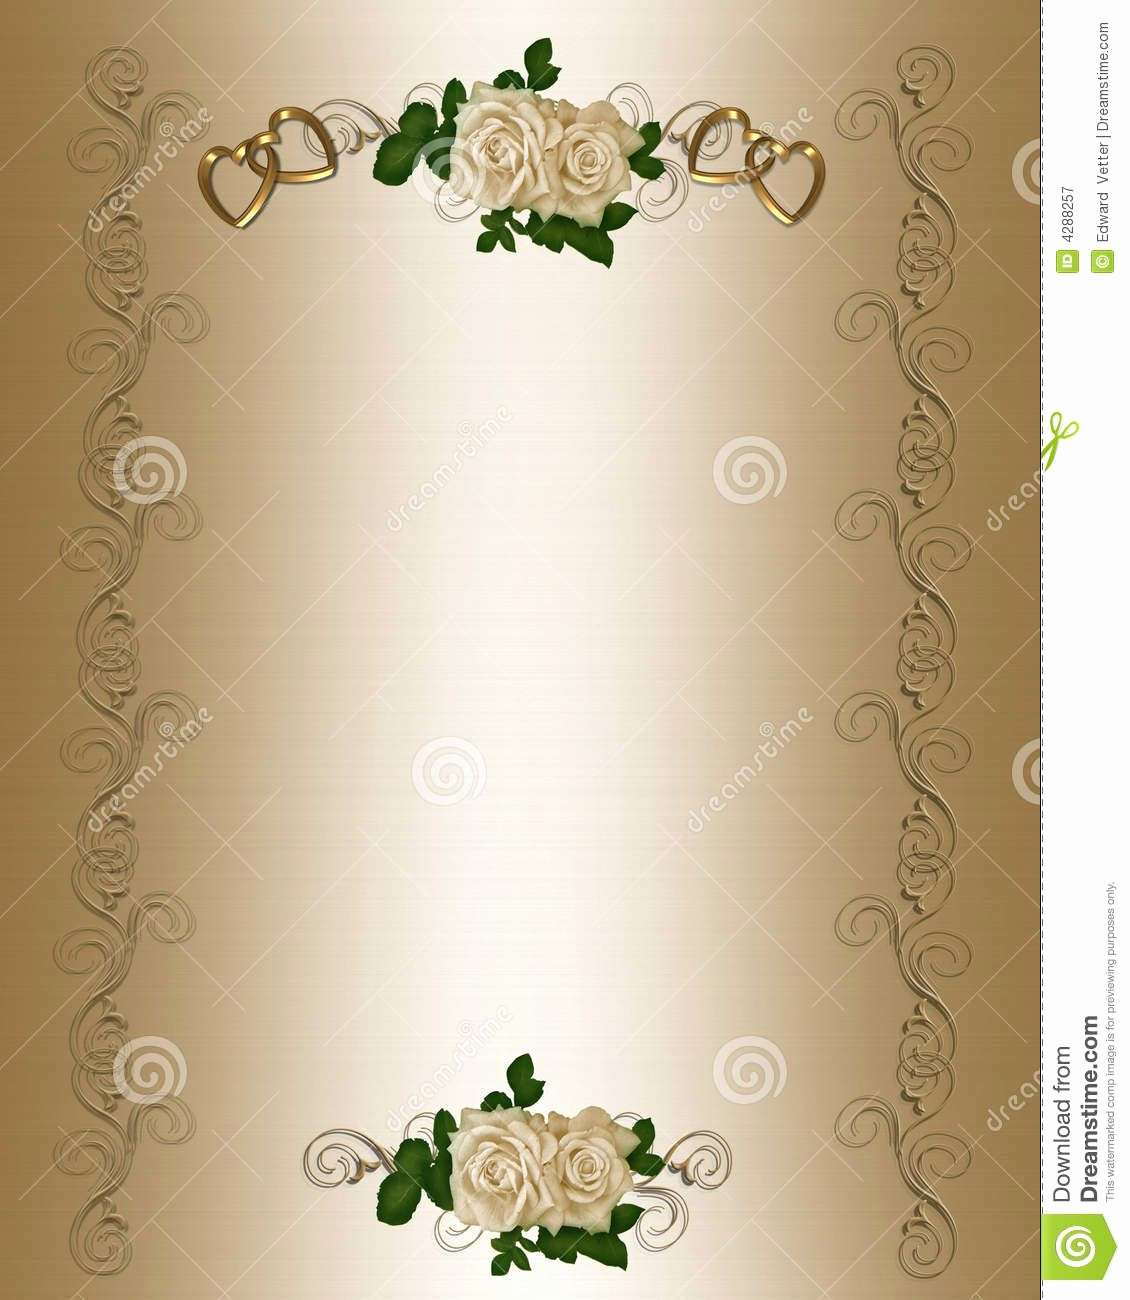 Wedding Invitation Border Designs Inspirational Wedding Templates Free Google Search